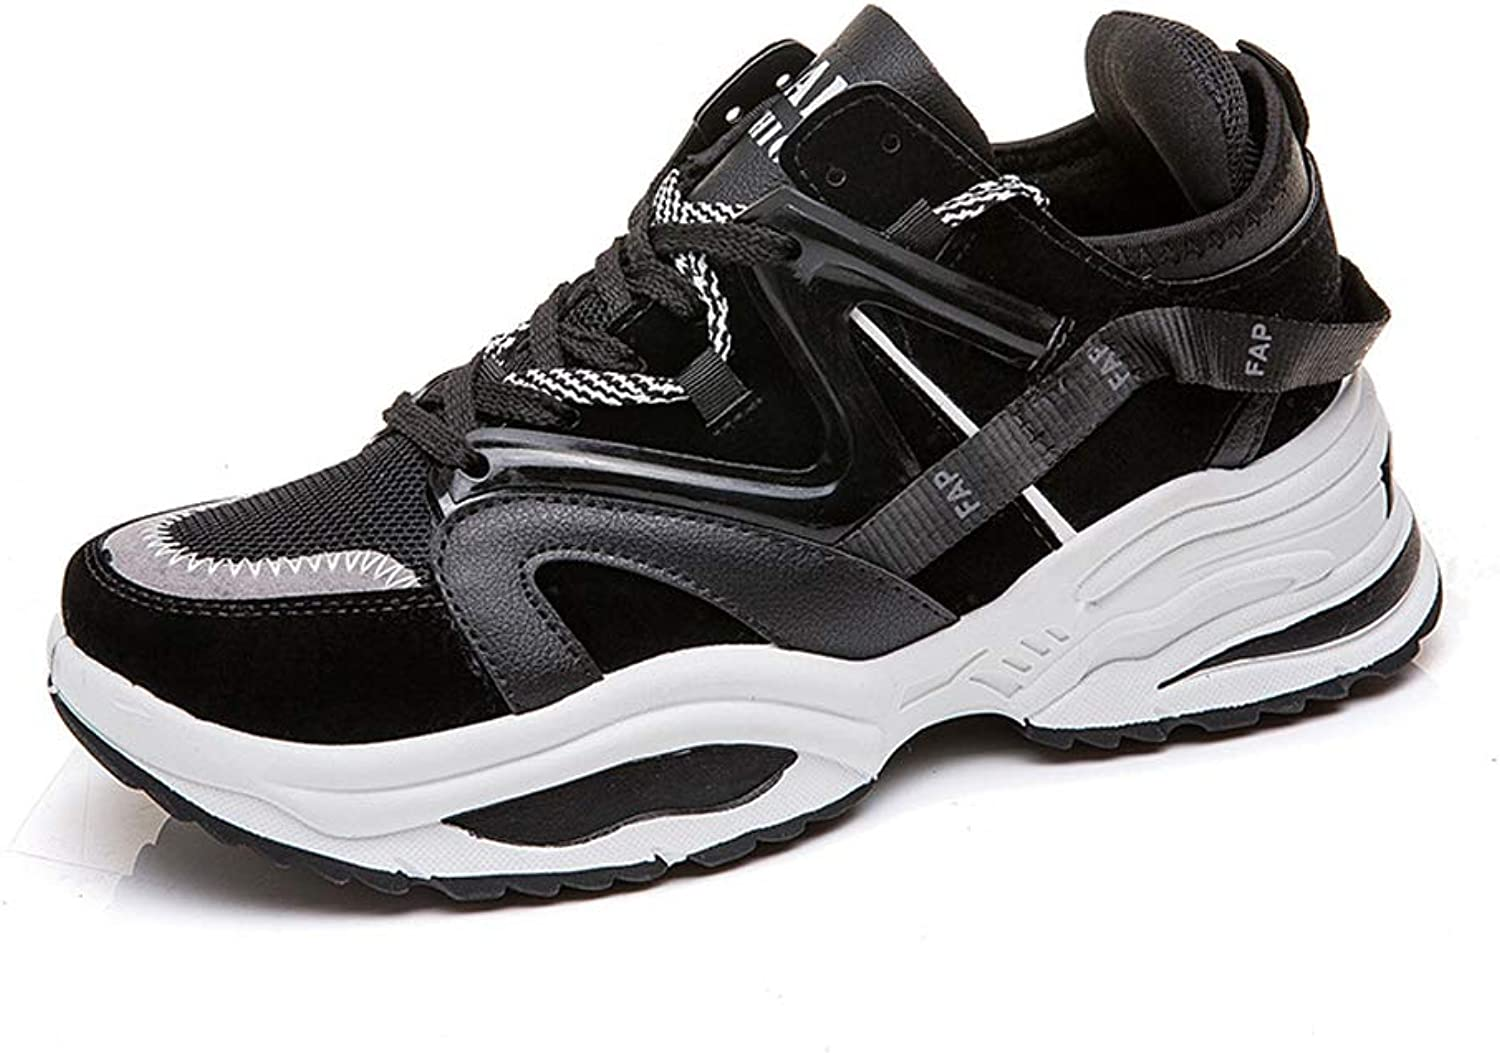 ZFLIN Sports shoes, Casual Sports, Running Men's shoes-black-38